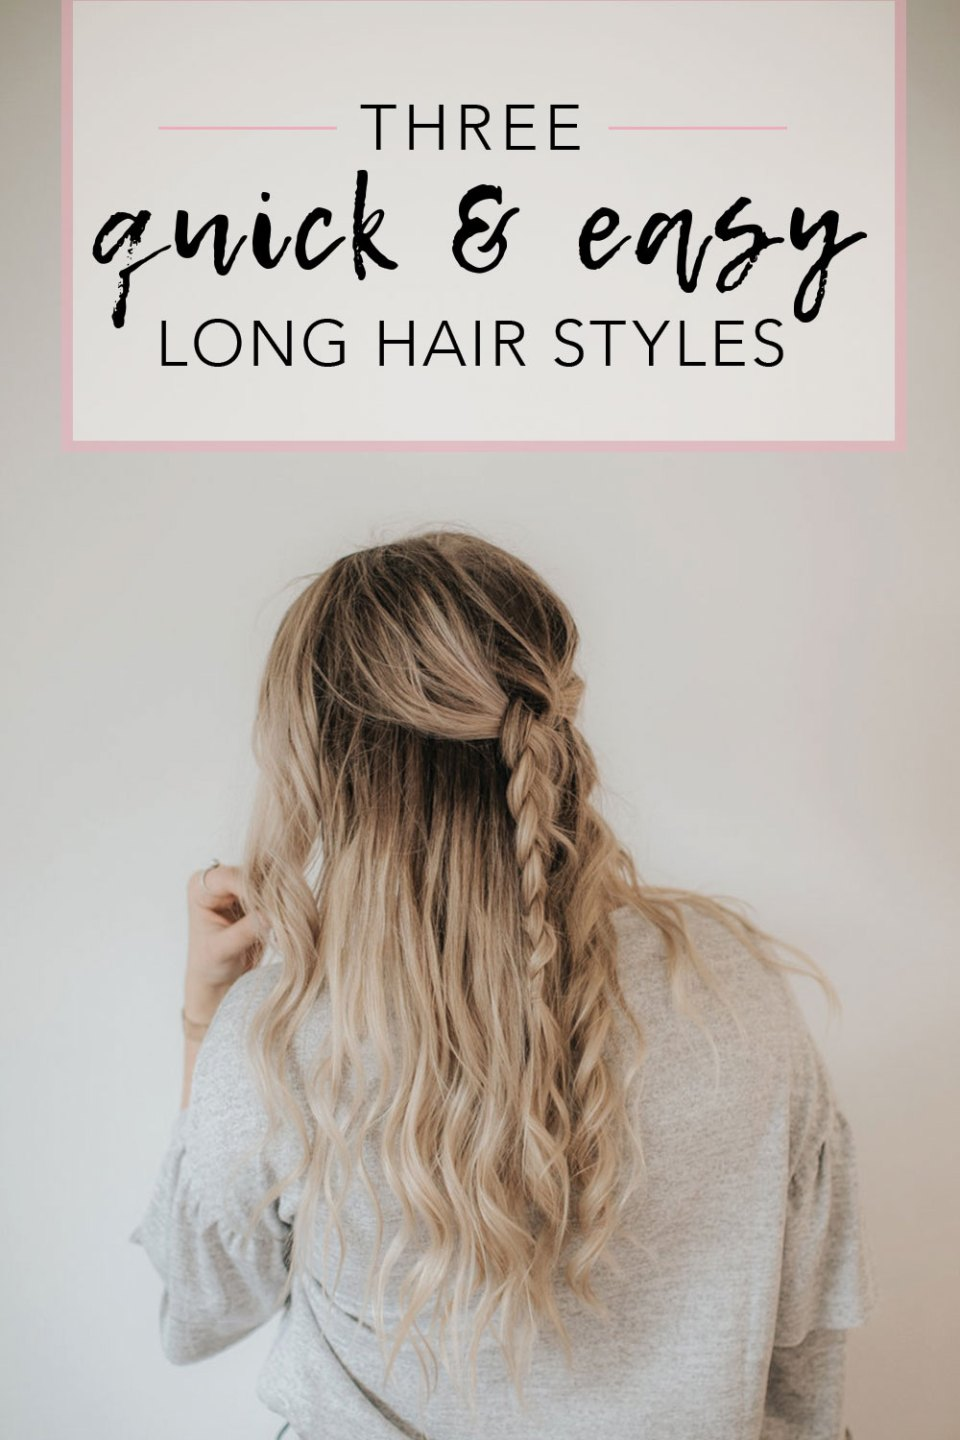 3 Quick and Easy Hairstyle Ideas for Thick Hair